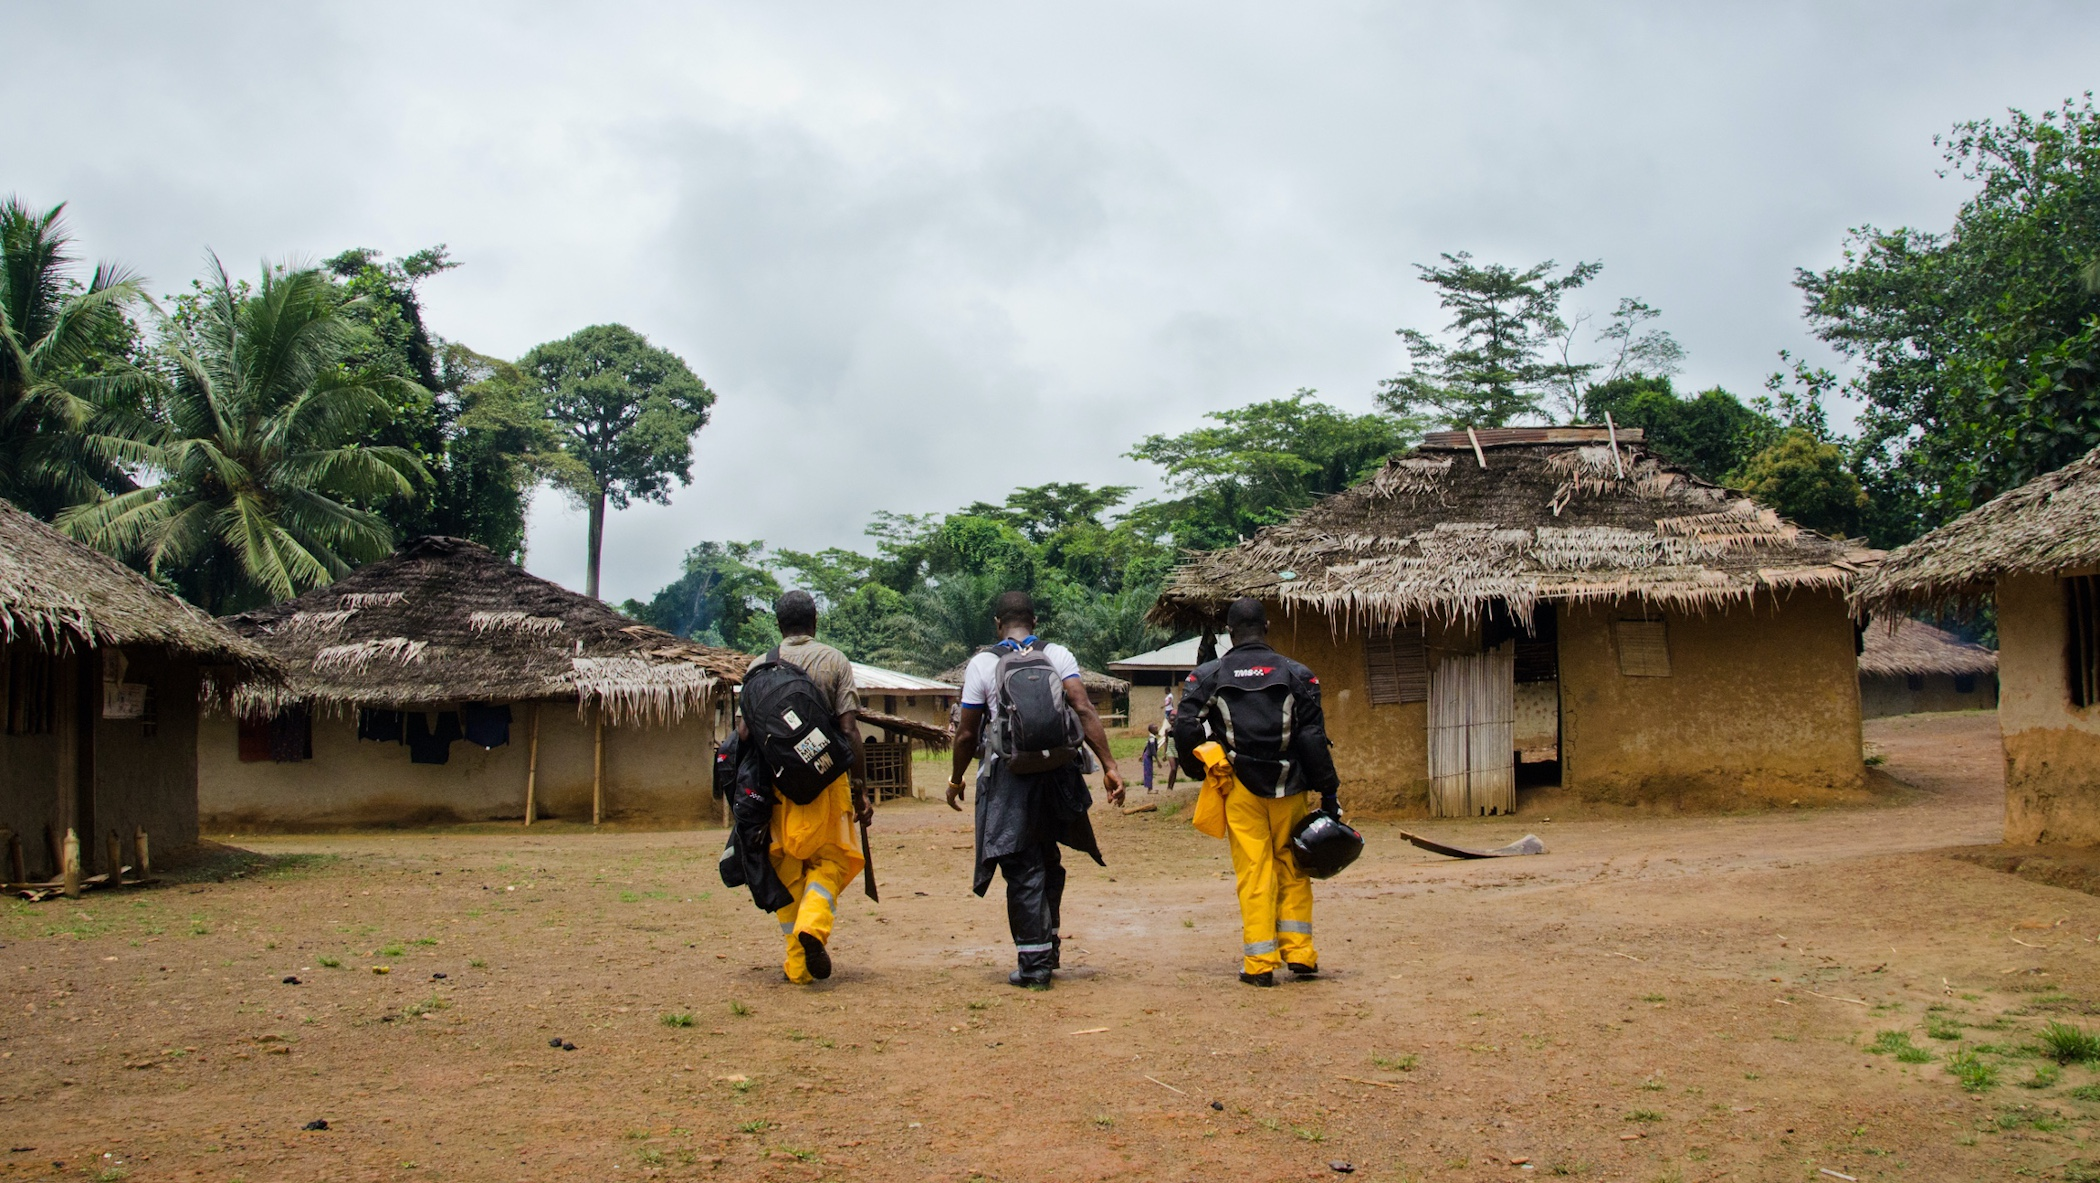 Three people walking with their backs to the camera.